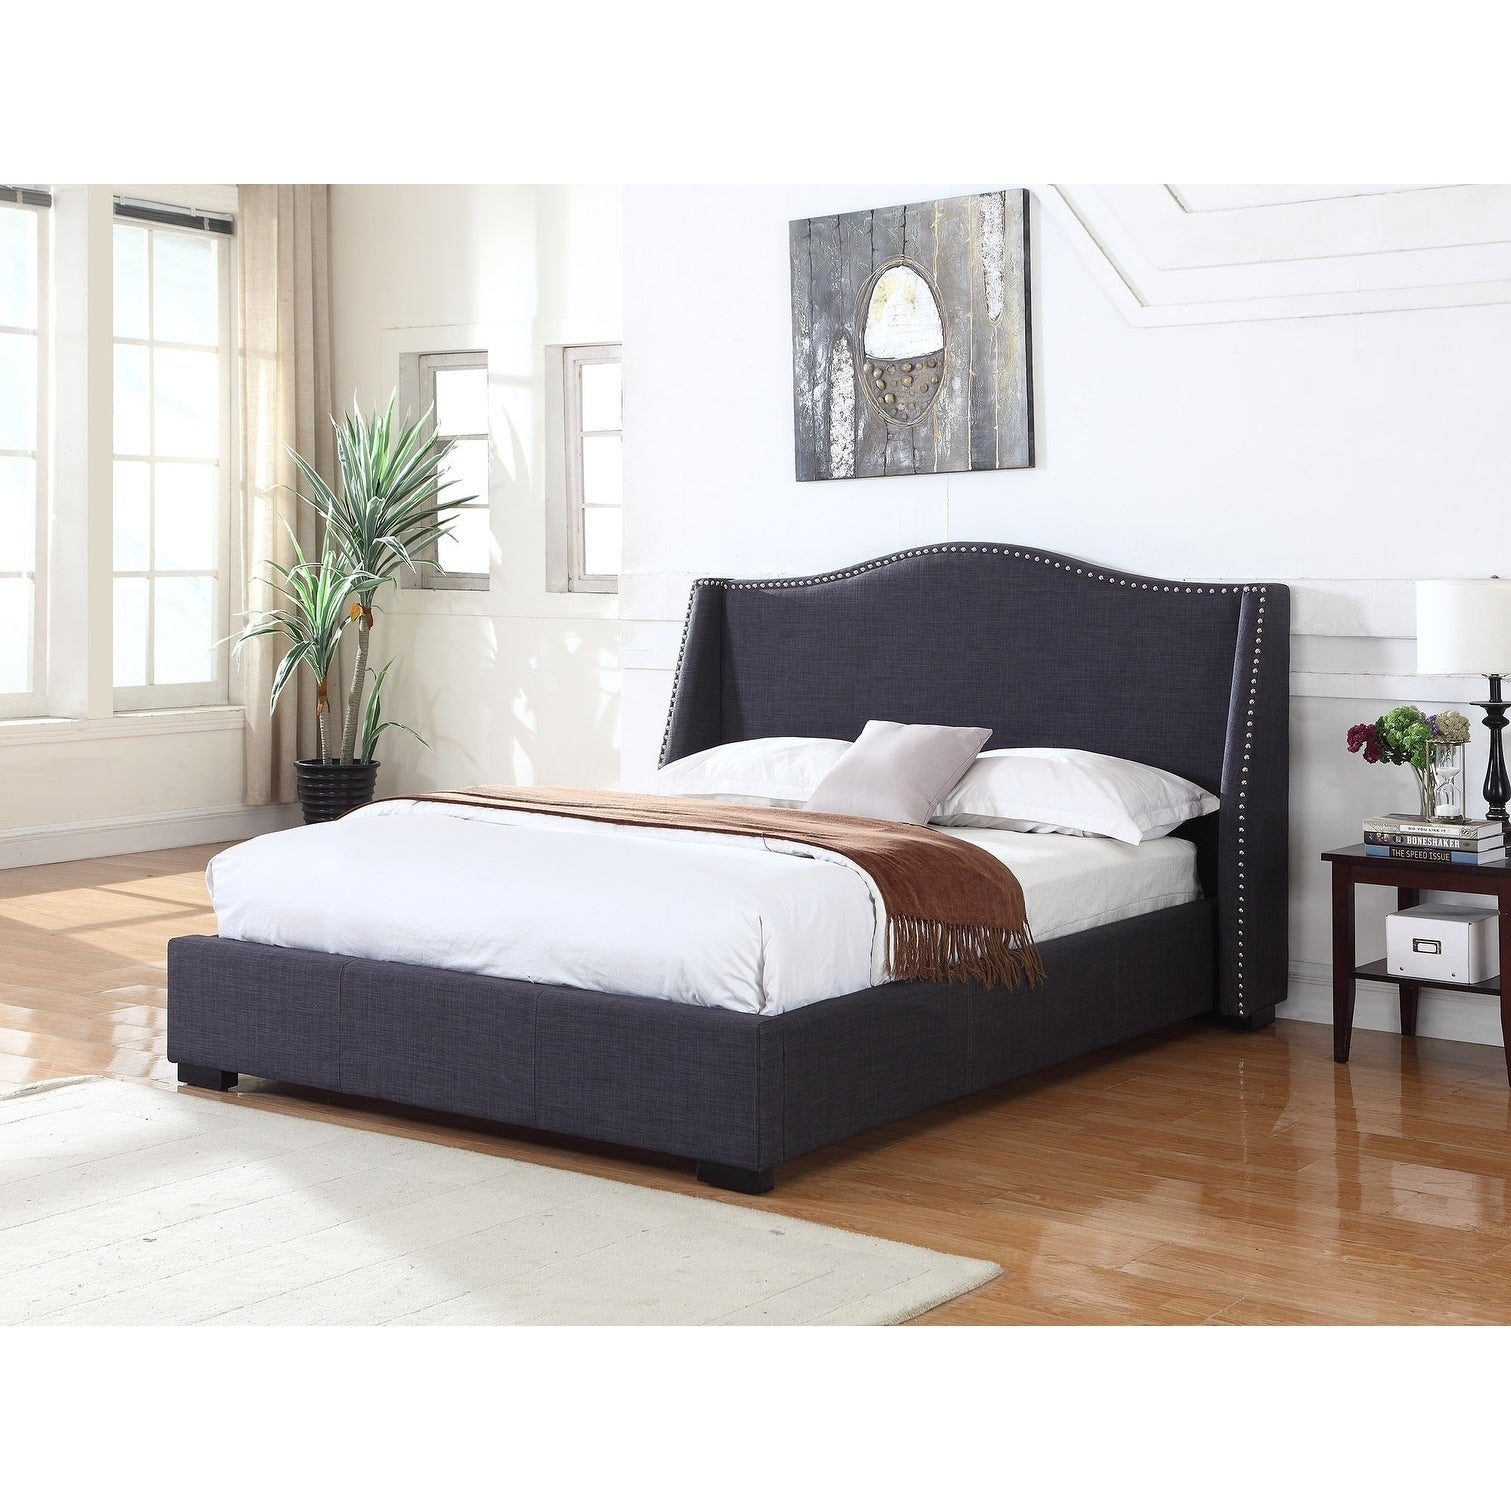 Shop best master furniture 386 charcoal upholstered panel bed free shipping today overstock com 21280530